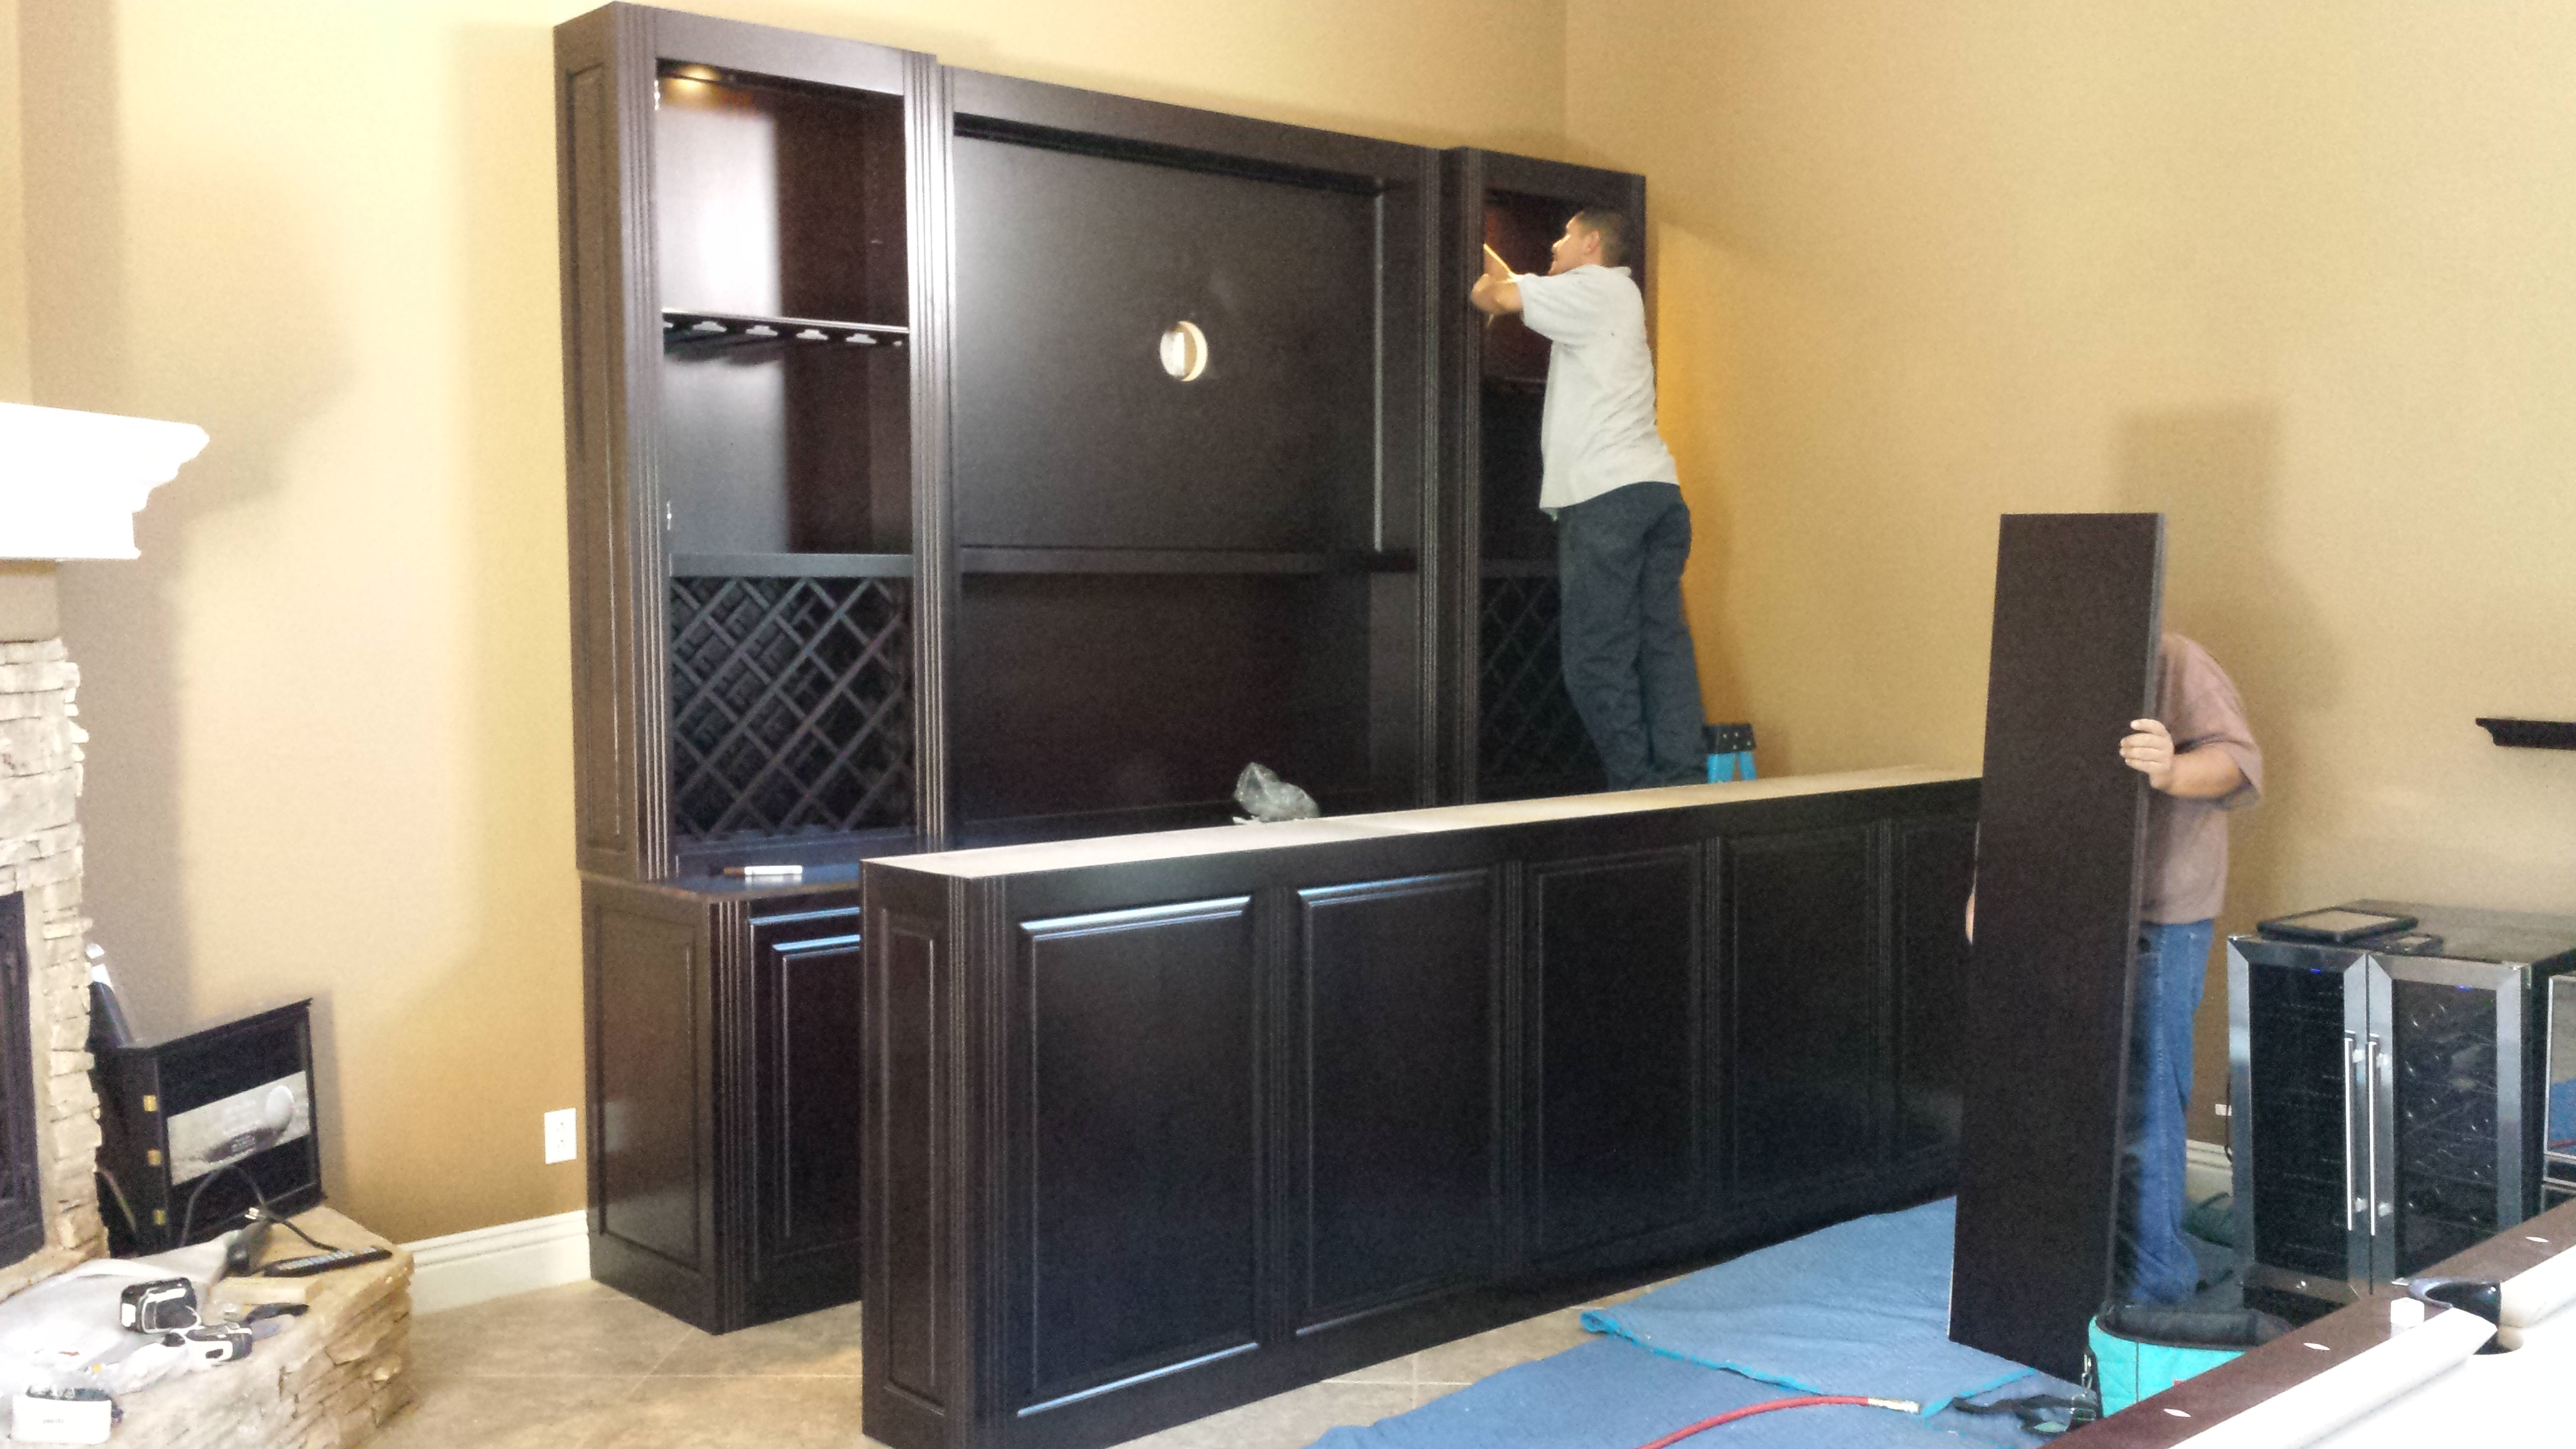 South Corona Ca. home entertainment Bar to be featured on our home page.